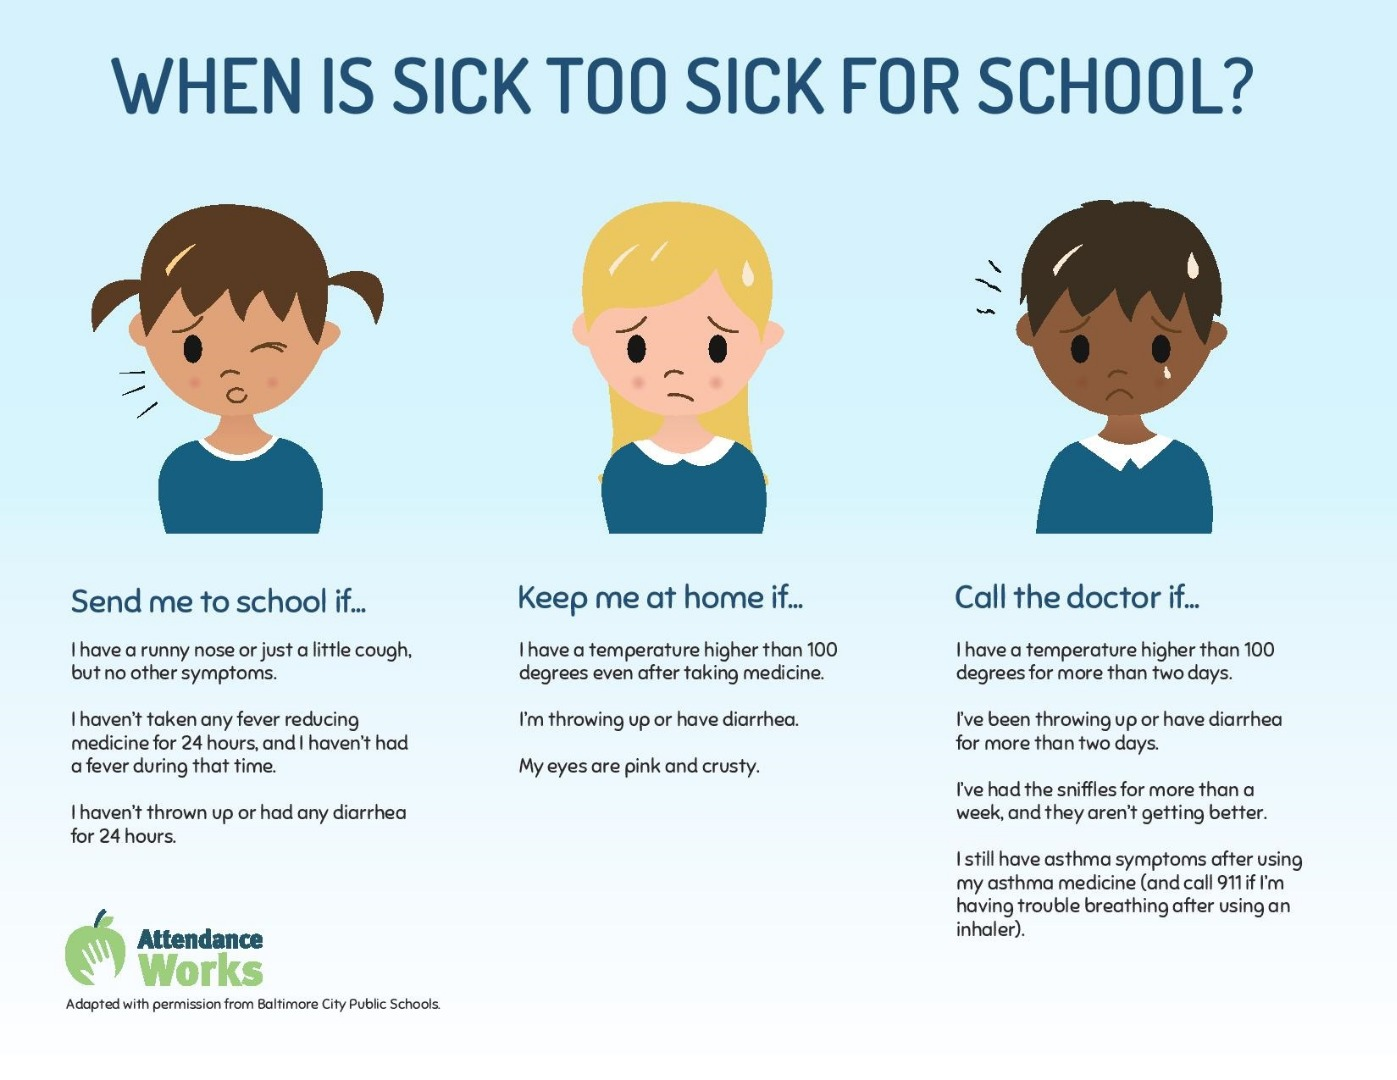 Send me to school if I don't have a fever, vomiting or diarrhea.